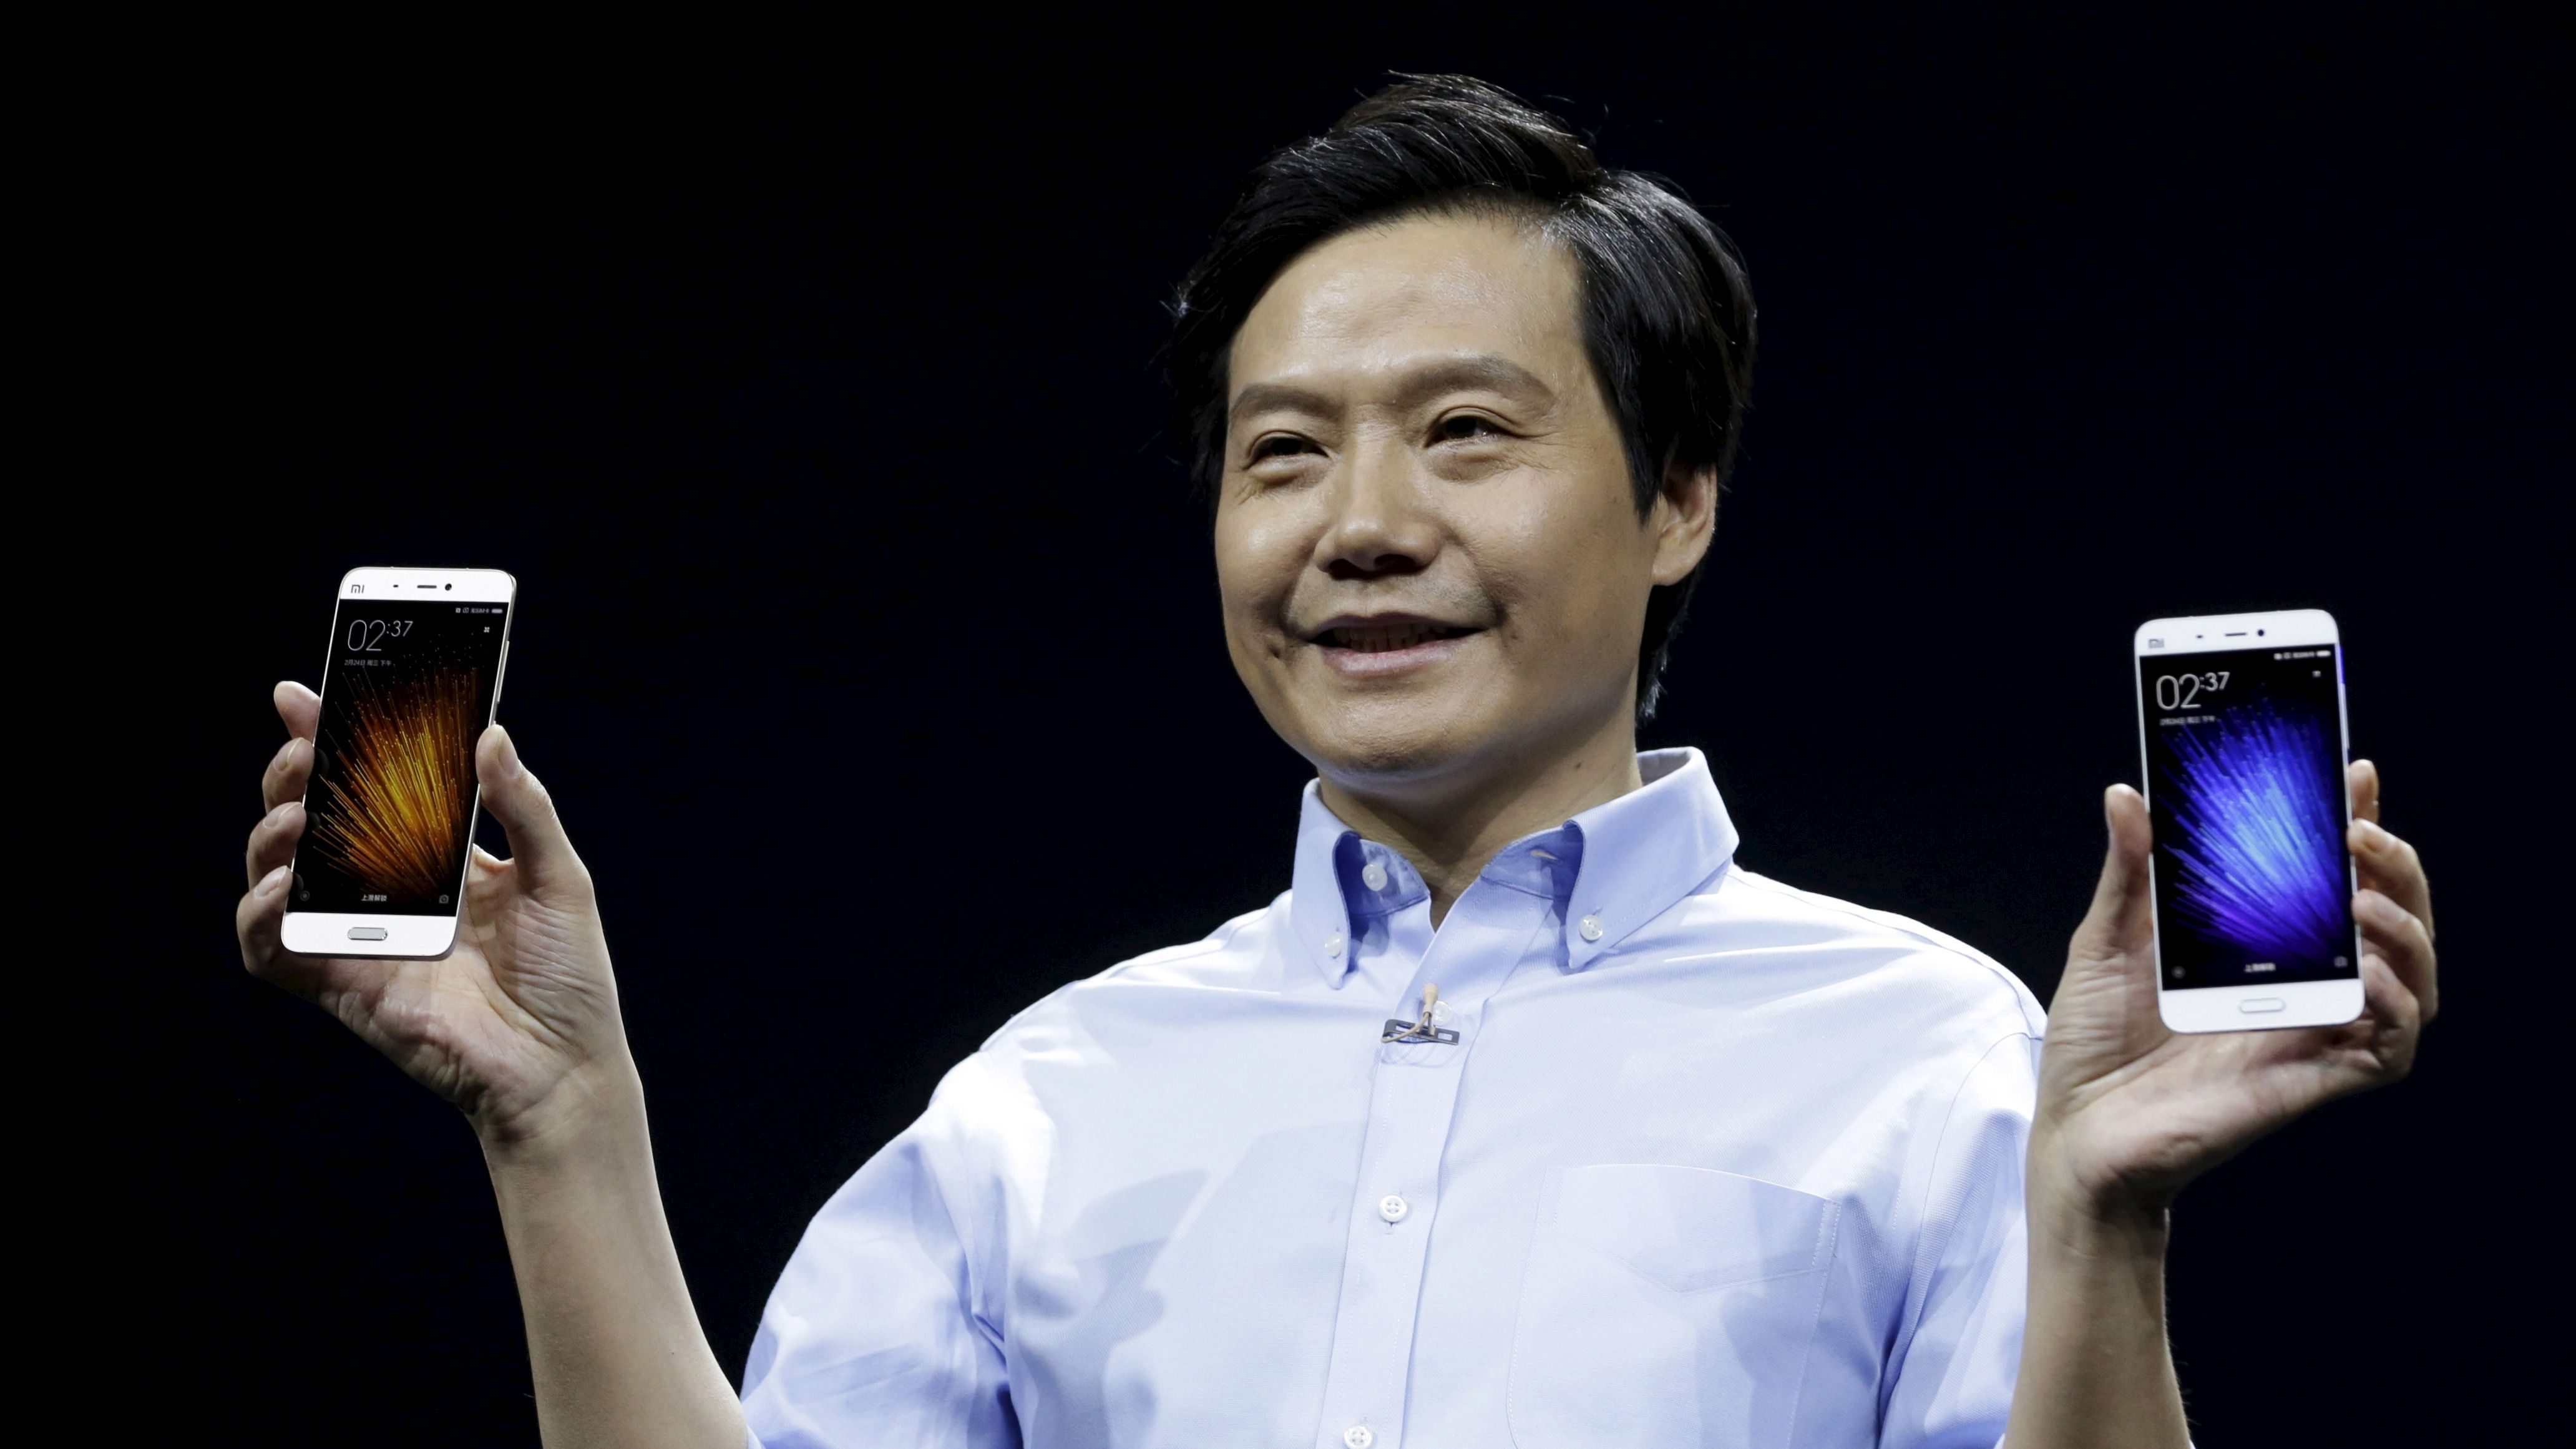 Lei Jun, founder and CEO of China's mobile company Xiaomi, displays Xiaomi Mi 5 at its launch ceremony, in Beijing, China, February 24, 2016.